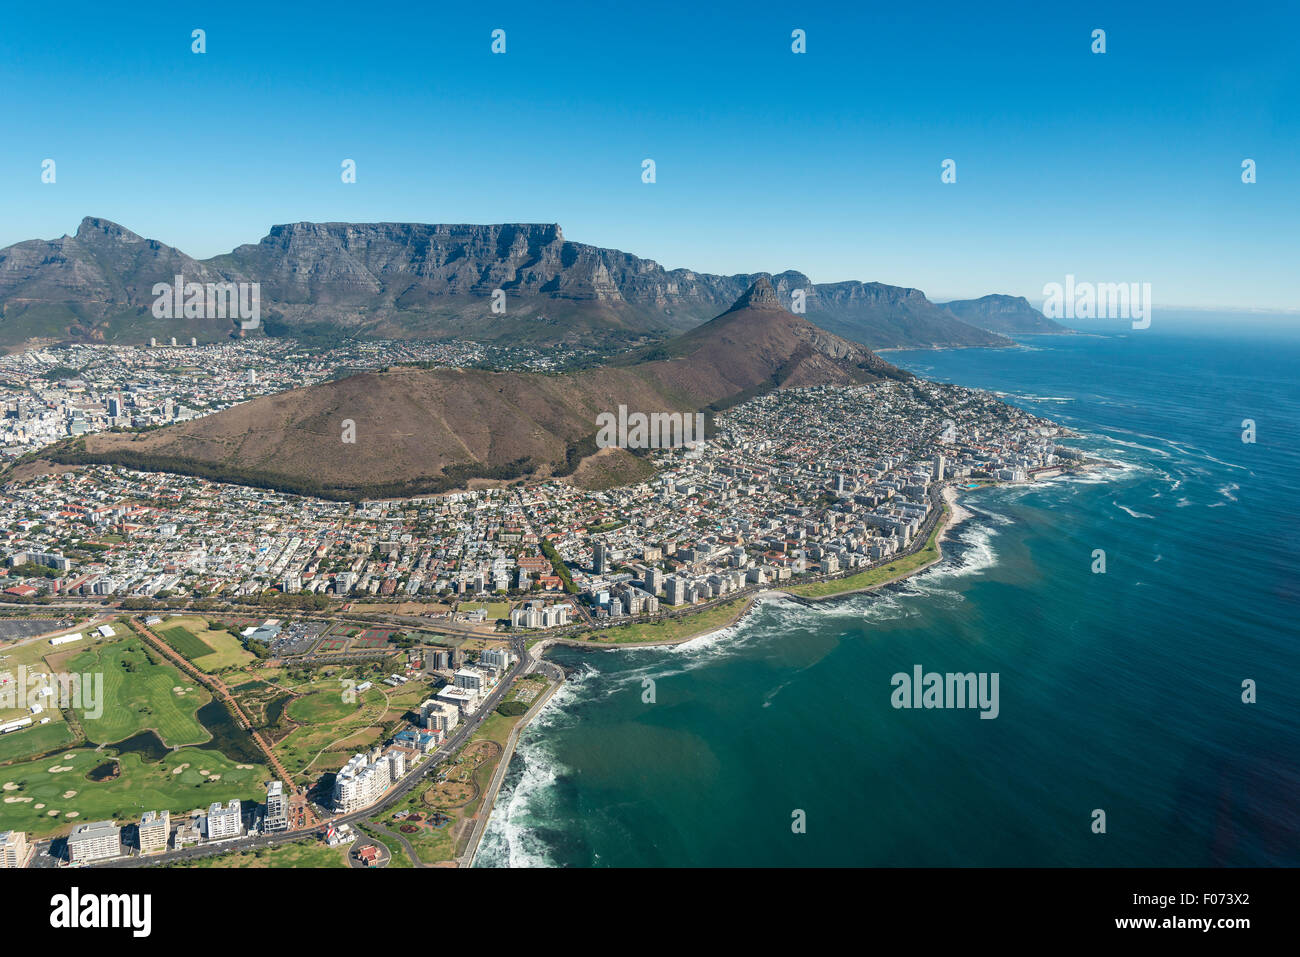 Aerial view of city and beaches, Cape Town, Western Cape Province, Republic of South Africa - Stock Image